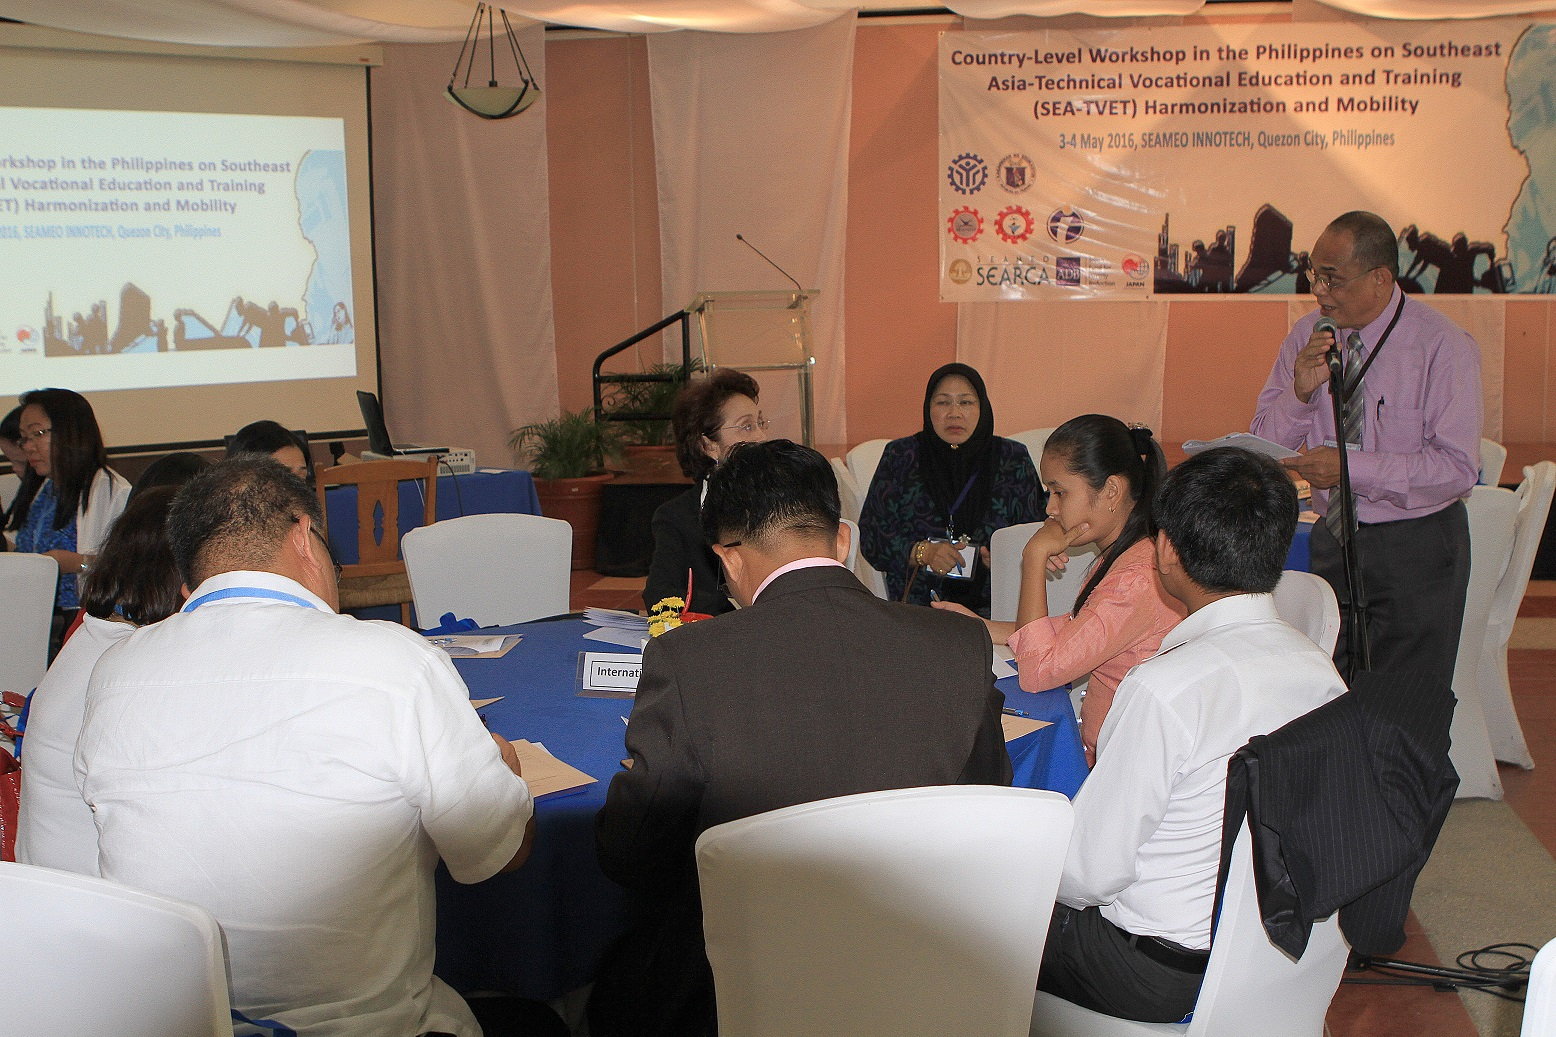 country level workshop on sea tvet harmonization and their participation in the sea tvet consortium was signed at the end of the workshop which was hosted by tesda and the department of education together